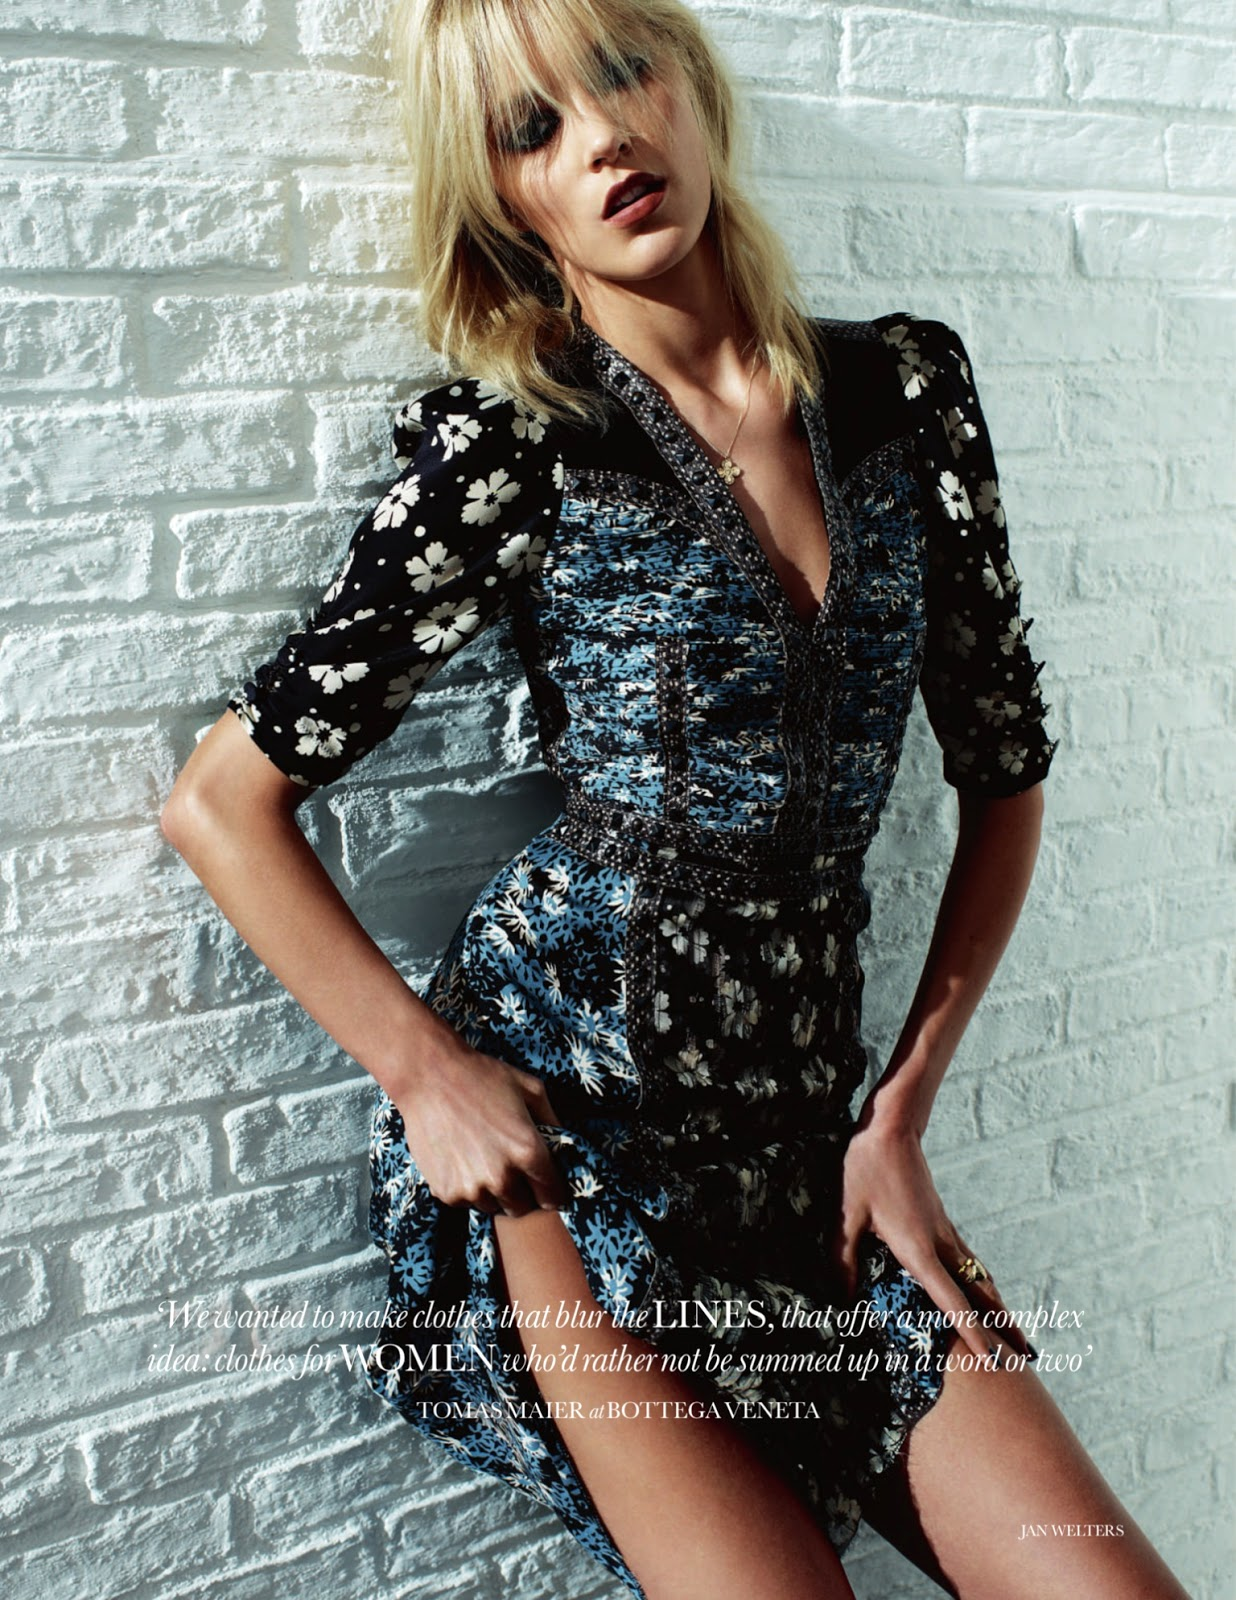 ELLE UK February 2013 by Jan Welters 'The Pieces You Need Now'-9